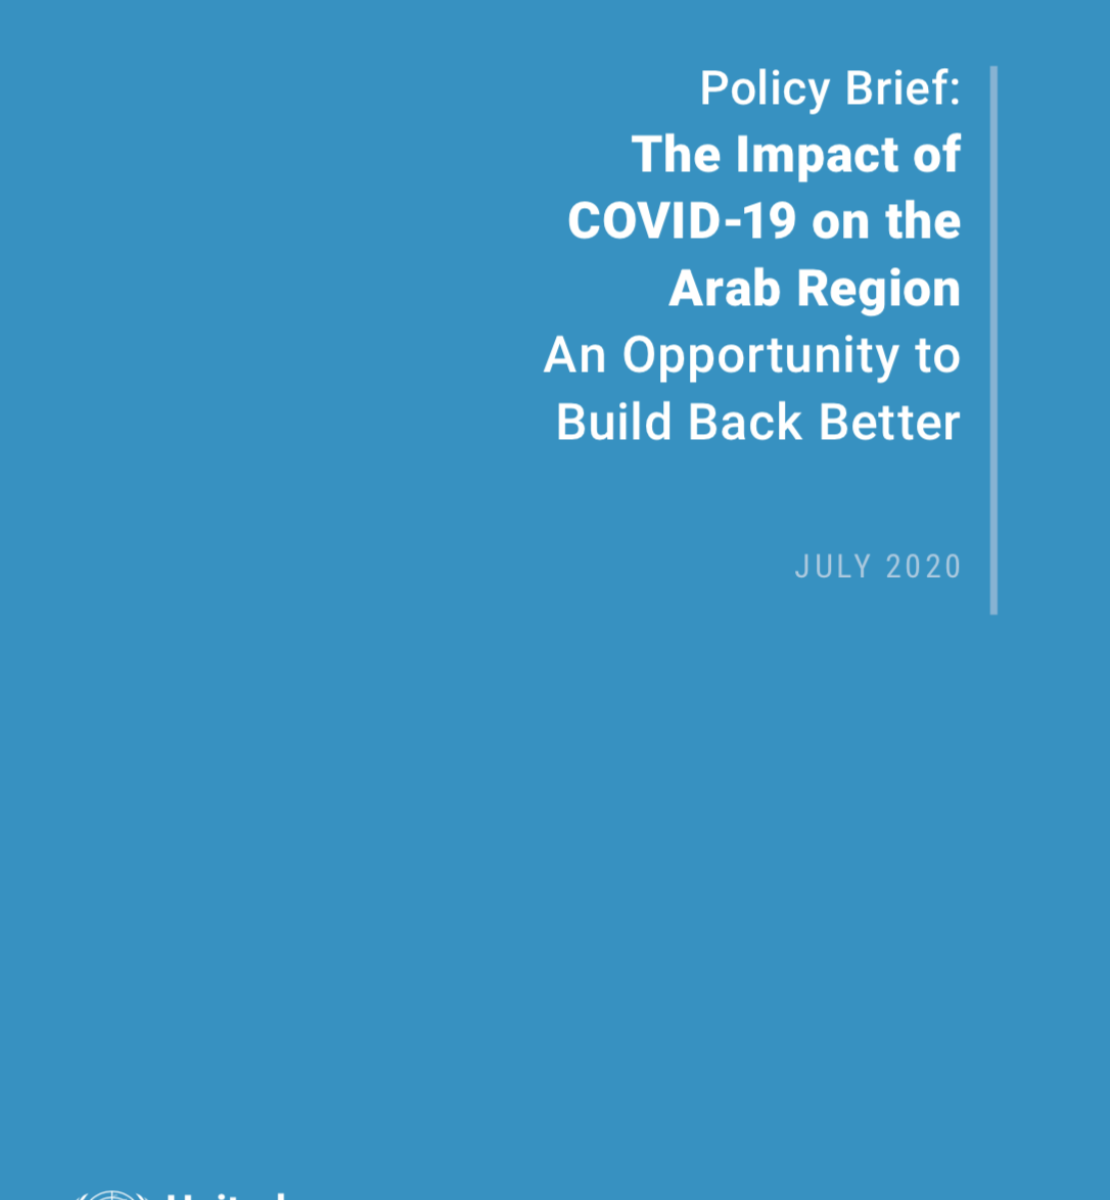 """Cover shows the title """"Policy Brief: The Impact of COVID-19 on the Arab Region An Opportunity to Build Back Better"""" against a solid blue background with the UN emblem on the lower left side."""